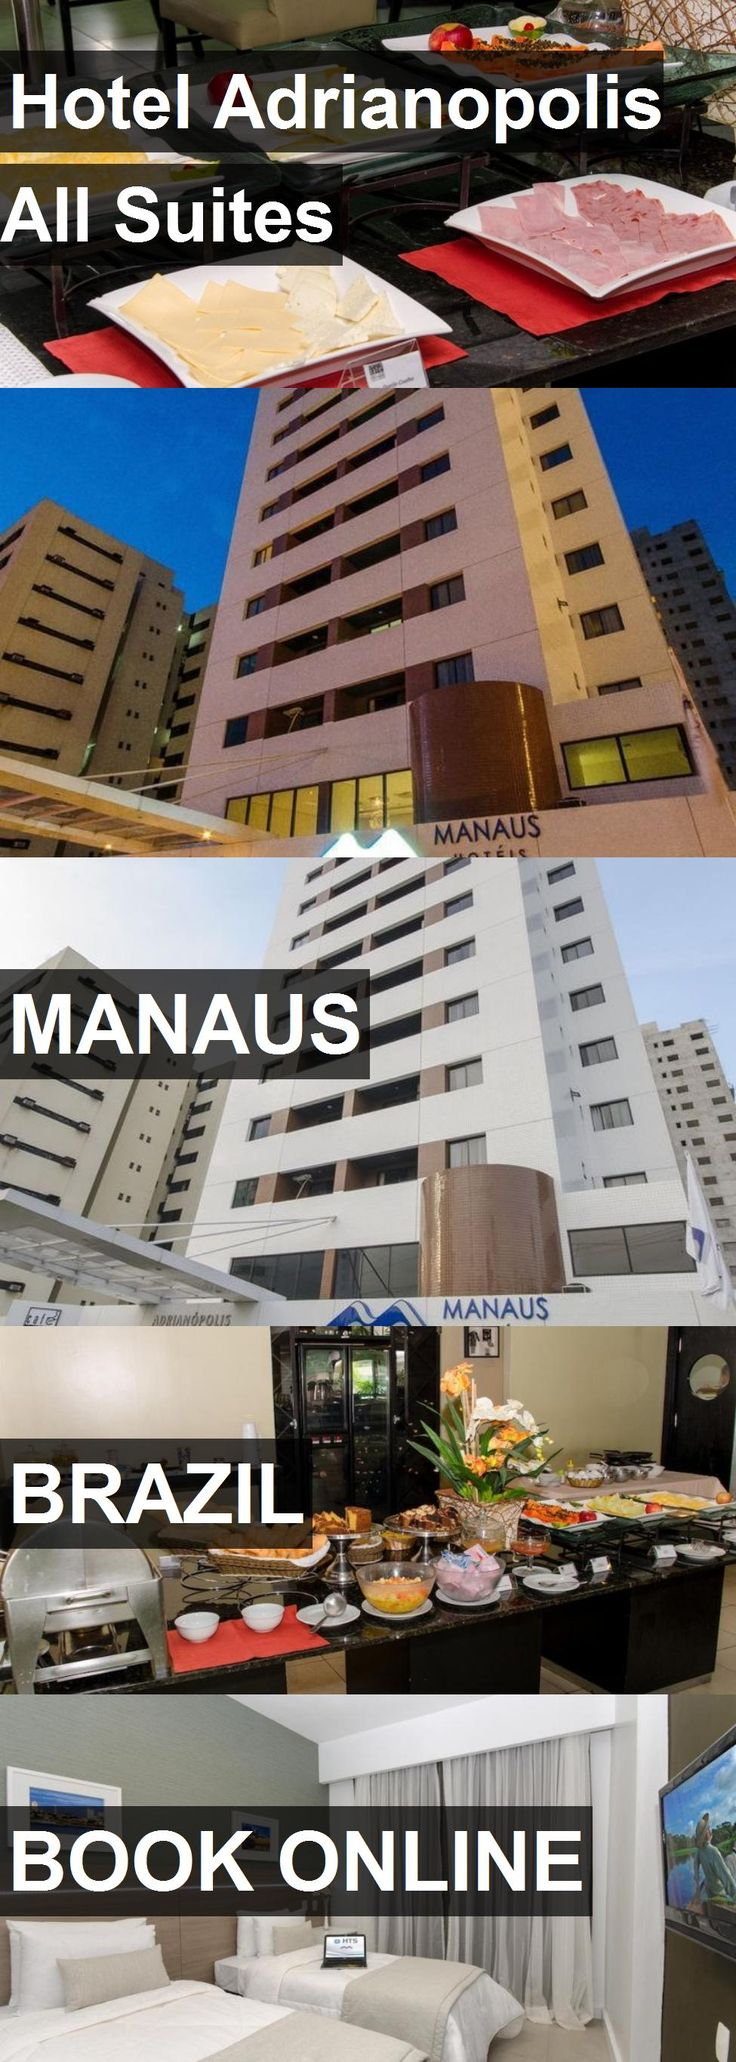 Hotel Adrianopolis All Suites in Manaus, Brazil. For more information, photos, reviews and best prices please follow the link. #Brazil #Manaus #travel #vacation #hotel